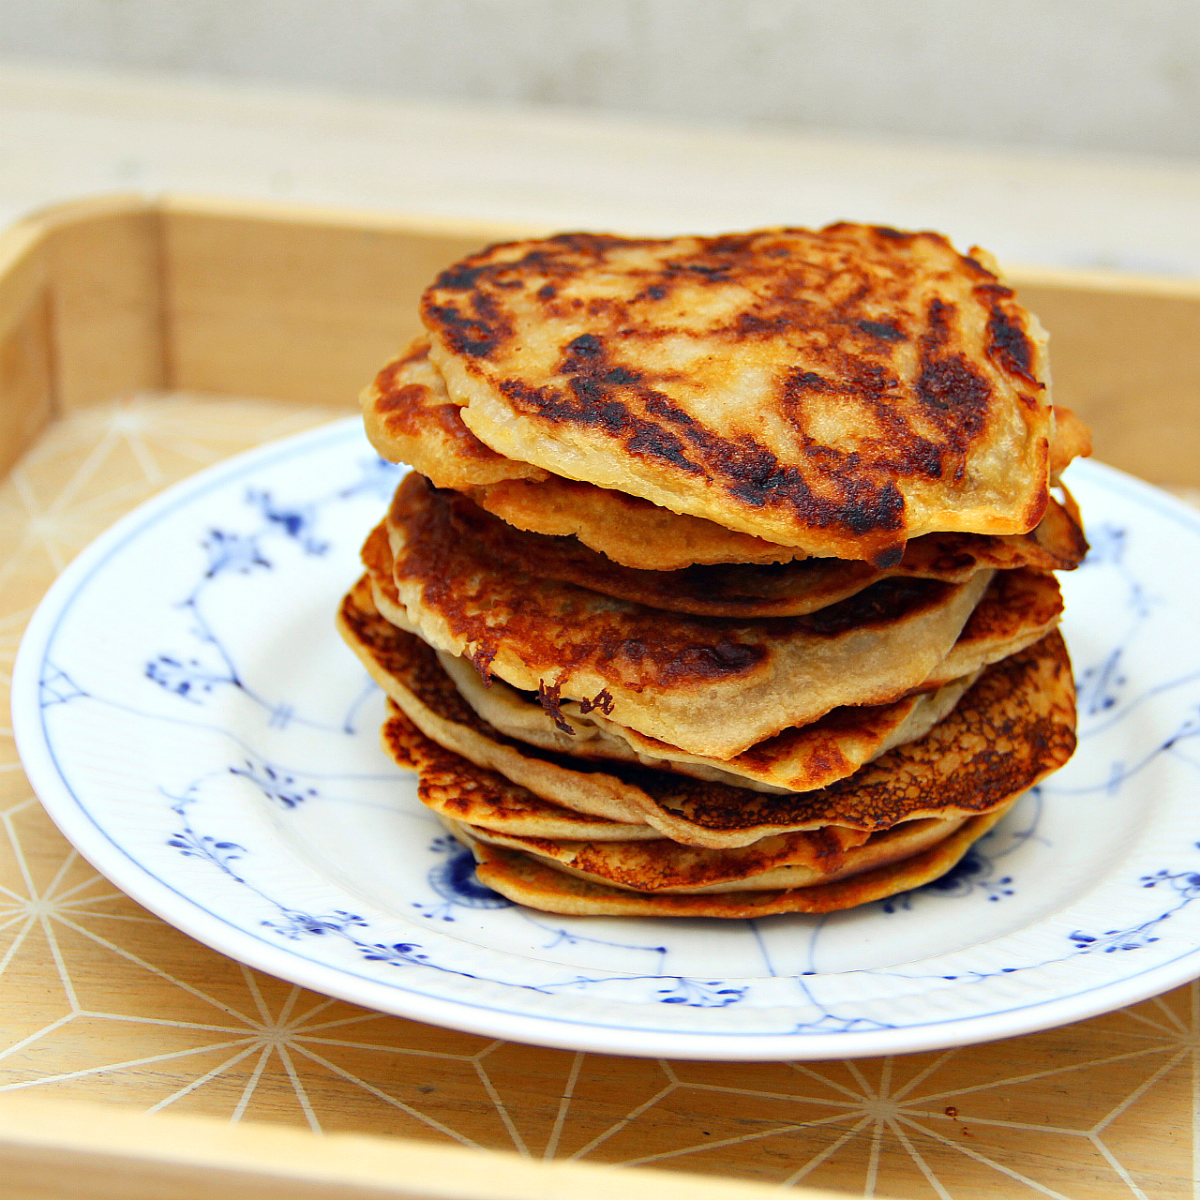 Vegan Klatkager / Danish Rice Pancakes - The Vegan Eskimo